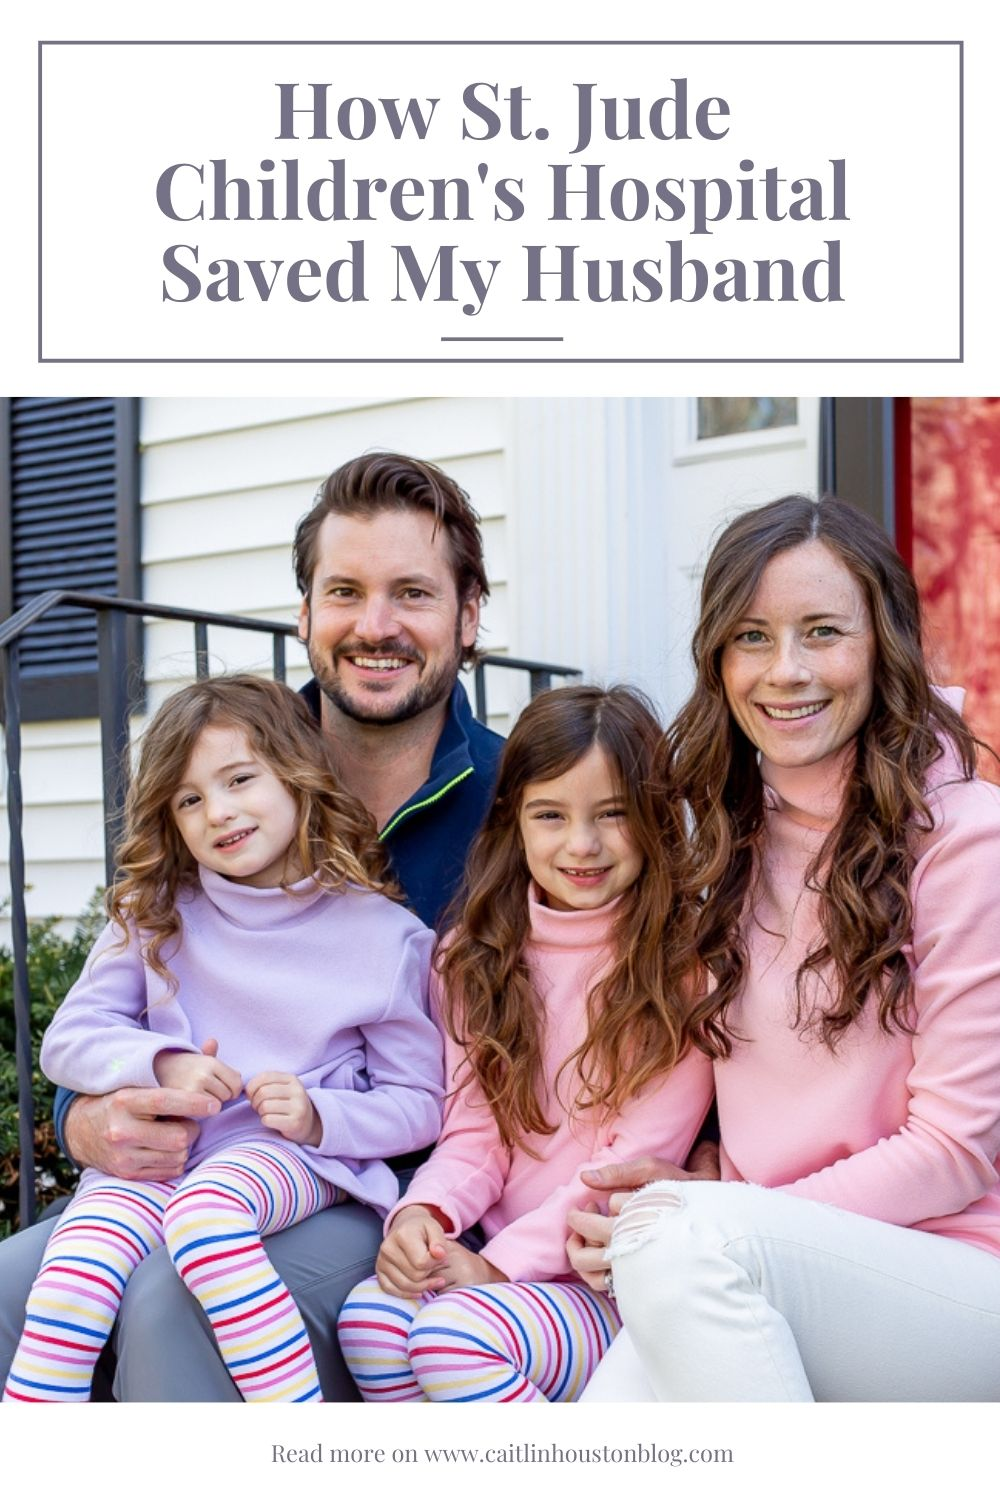 How St Jude Children's Hospital Saved My Husband's Life - Survivor Story for St. Jude patient Brandon Houston on Caitlin Houston Blog